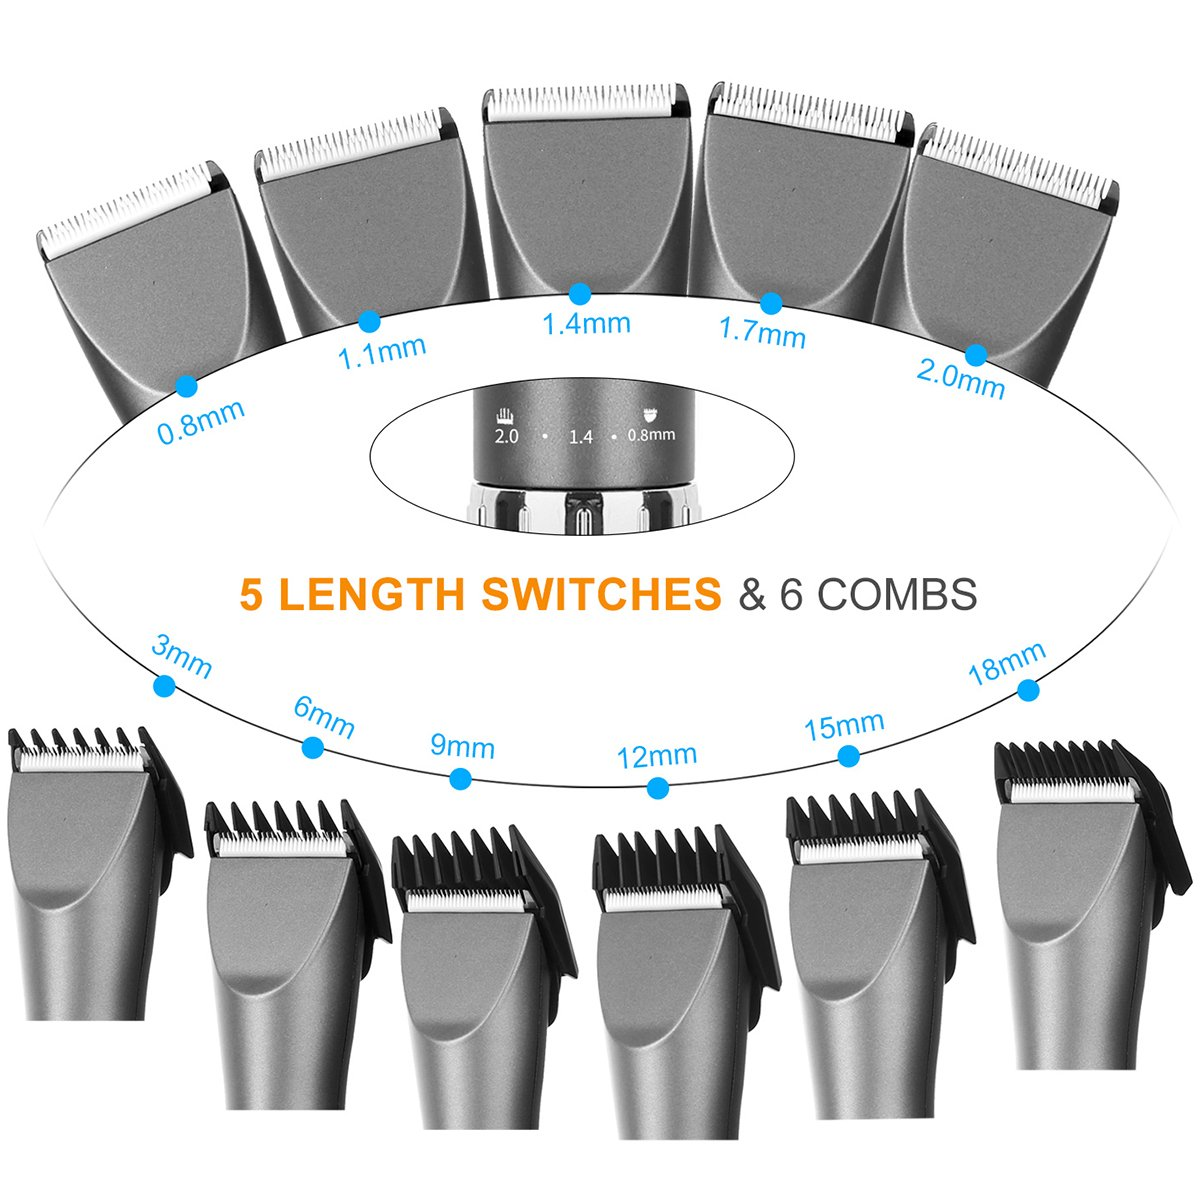 Sminiker Professional Cordless Haircut Kit Rechargeable Hair Clippers Set with 2 Batteries, 6 Comb, Guides and Scissors - Grey by Sminiker Professional (Image #4)